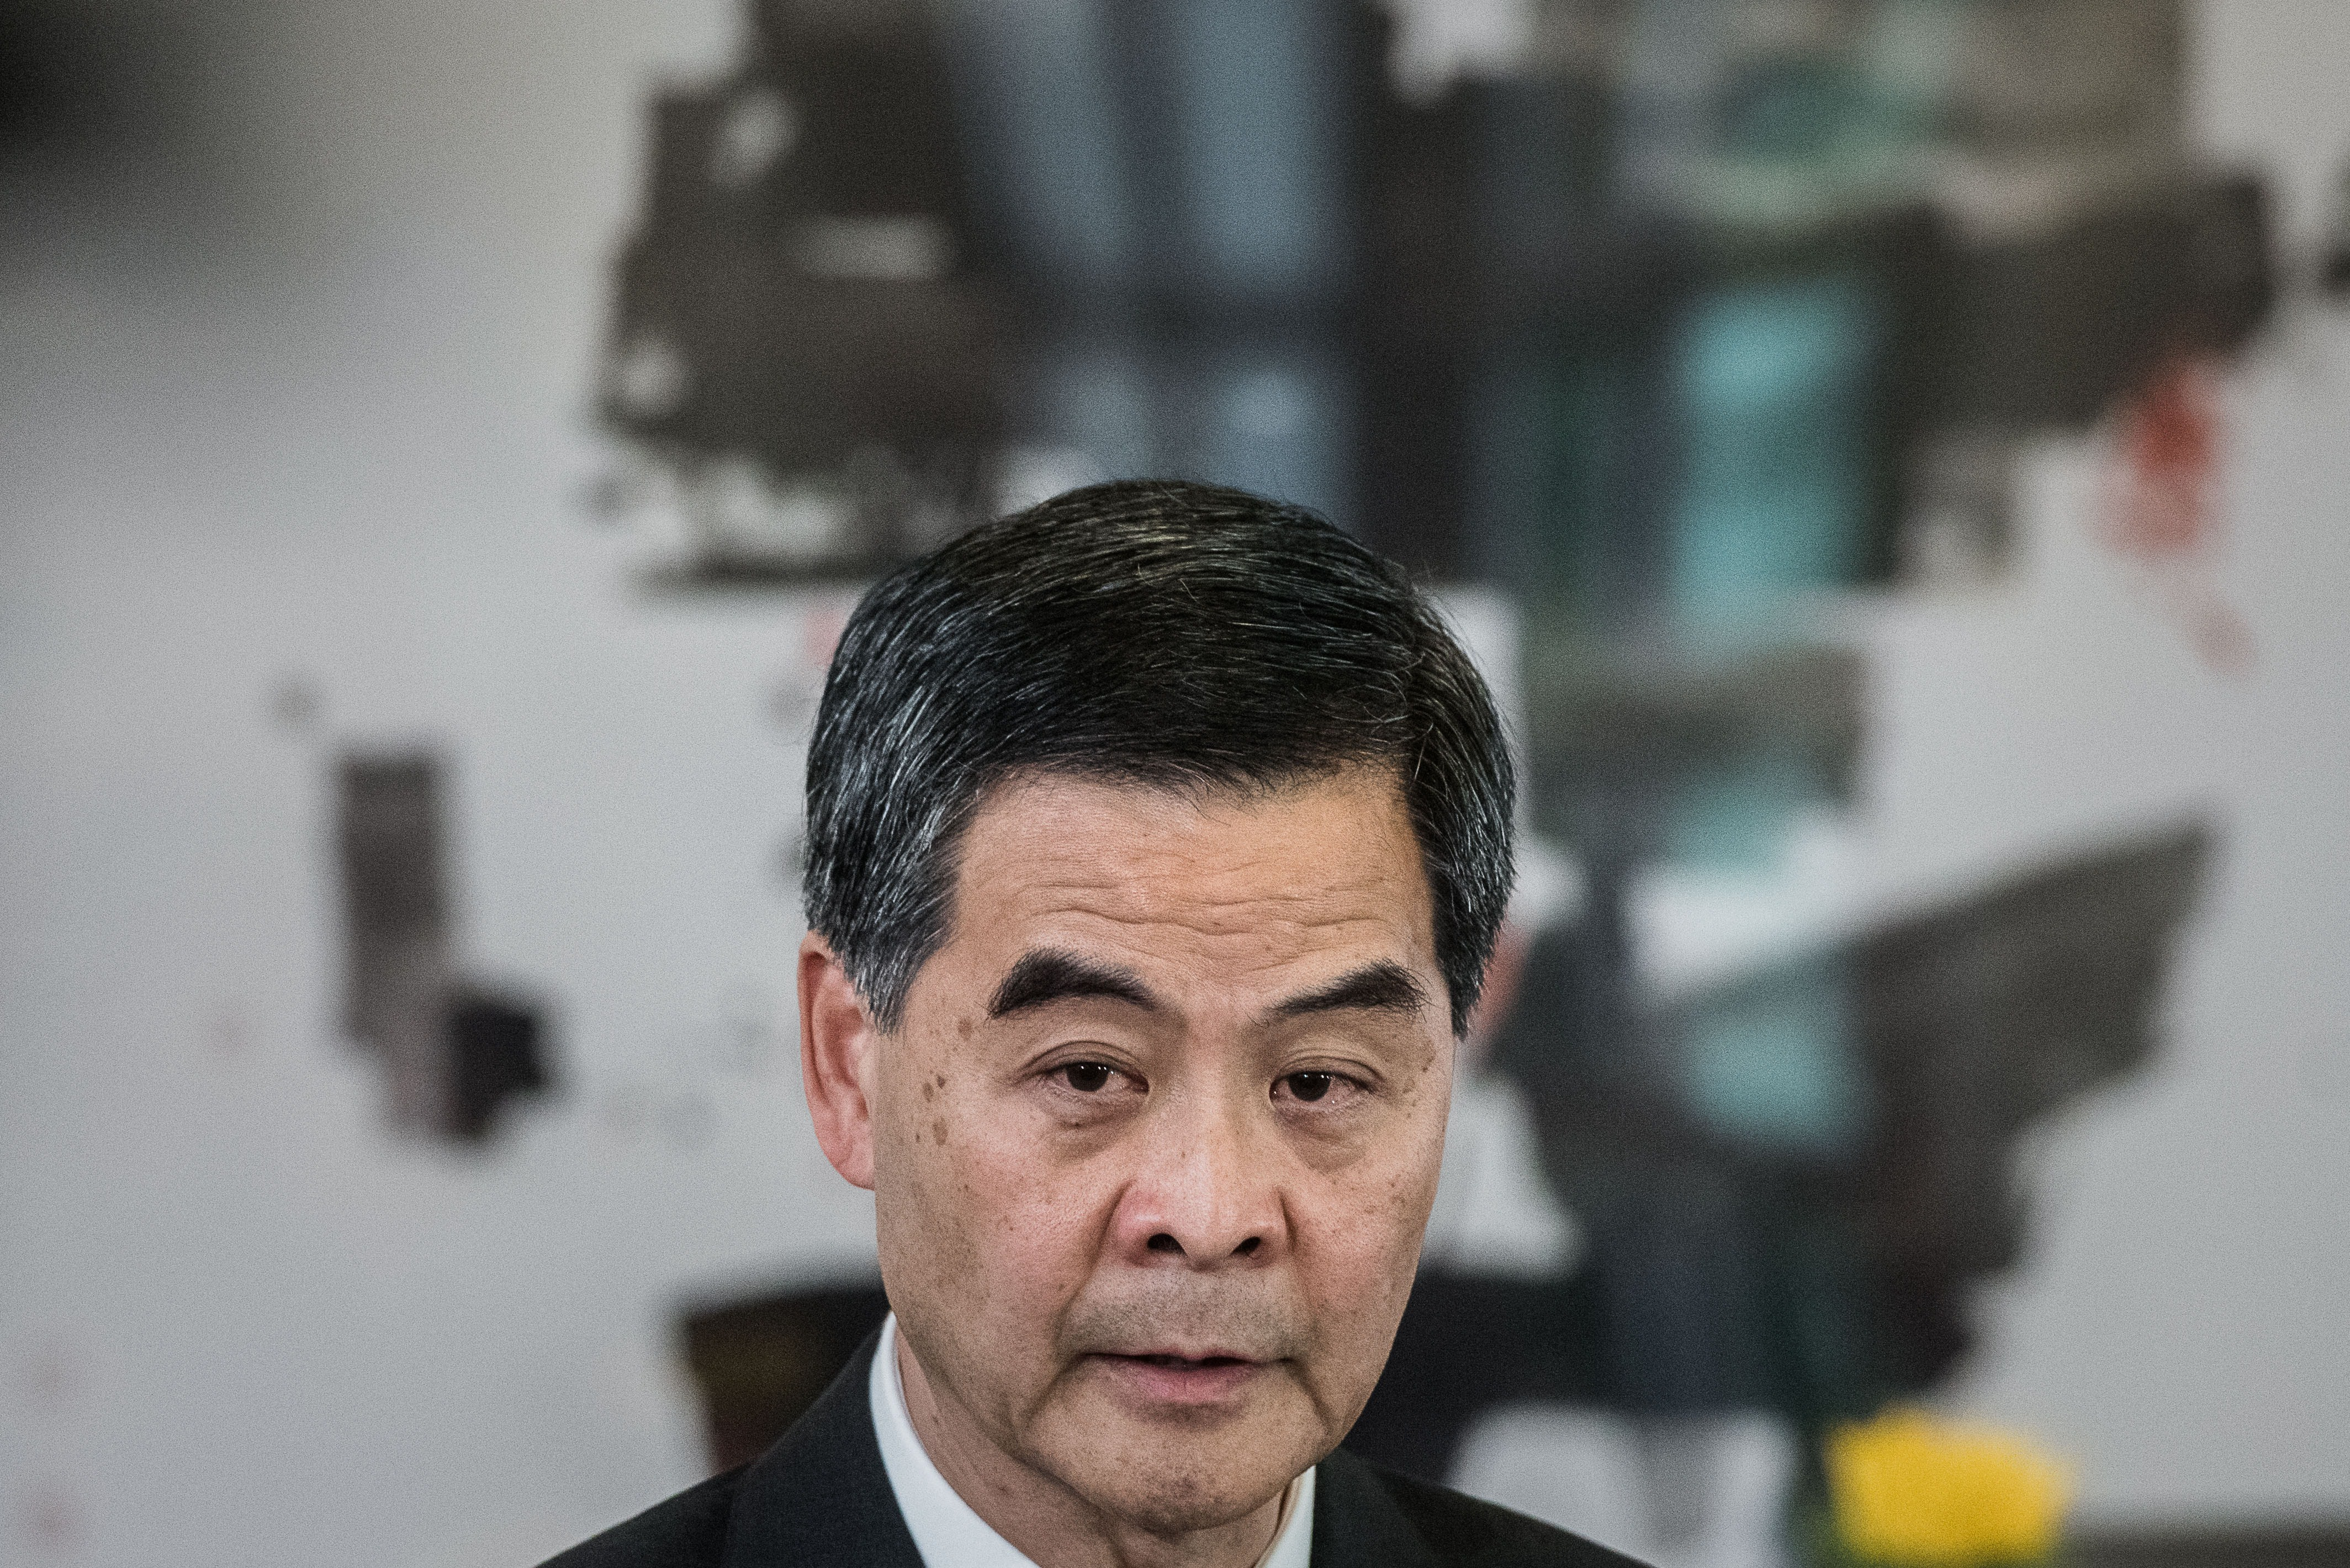 Hong Kong Chief Executive Leung Chun-ying answers questions during a press conference in Hong Kong on Oct. 16, 2014